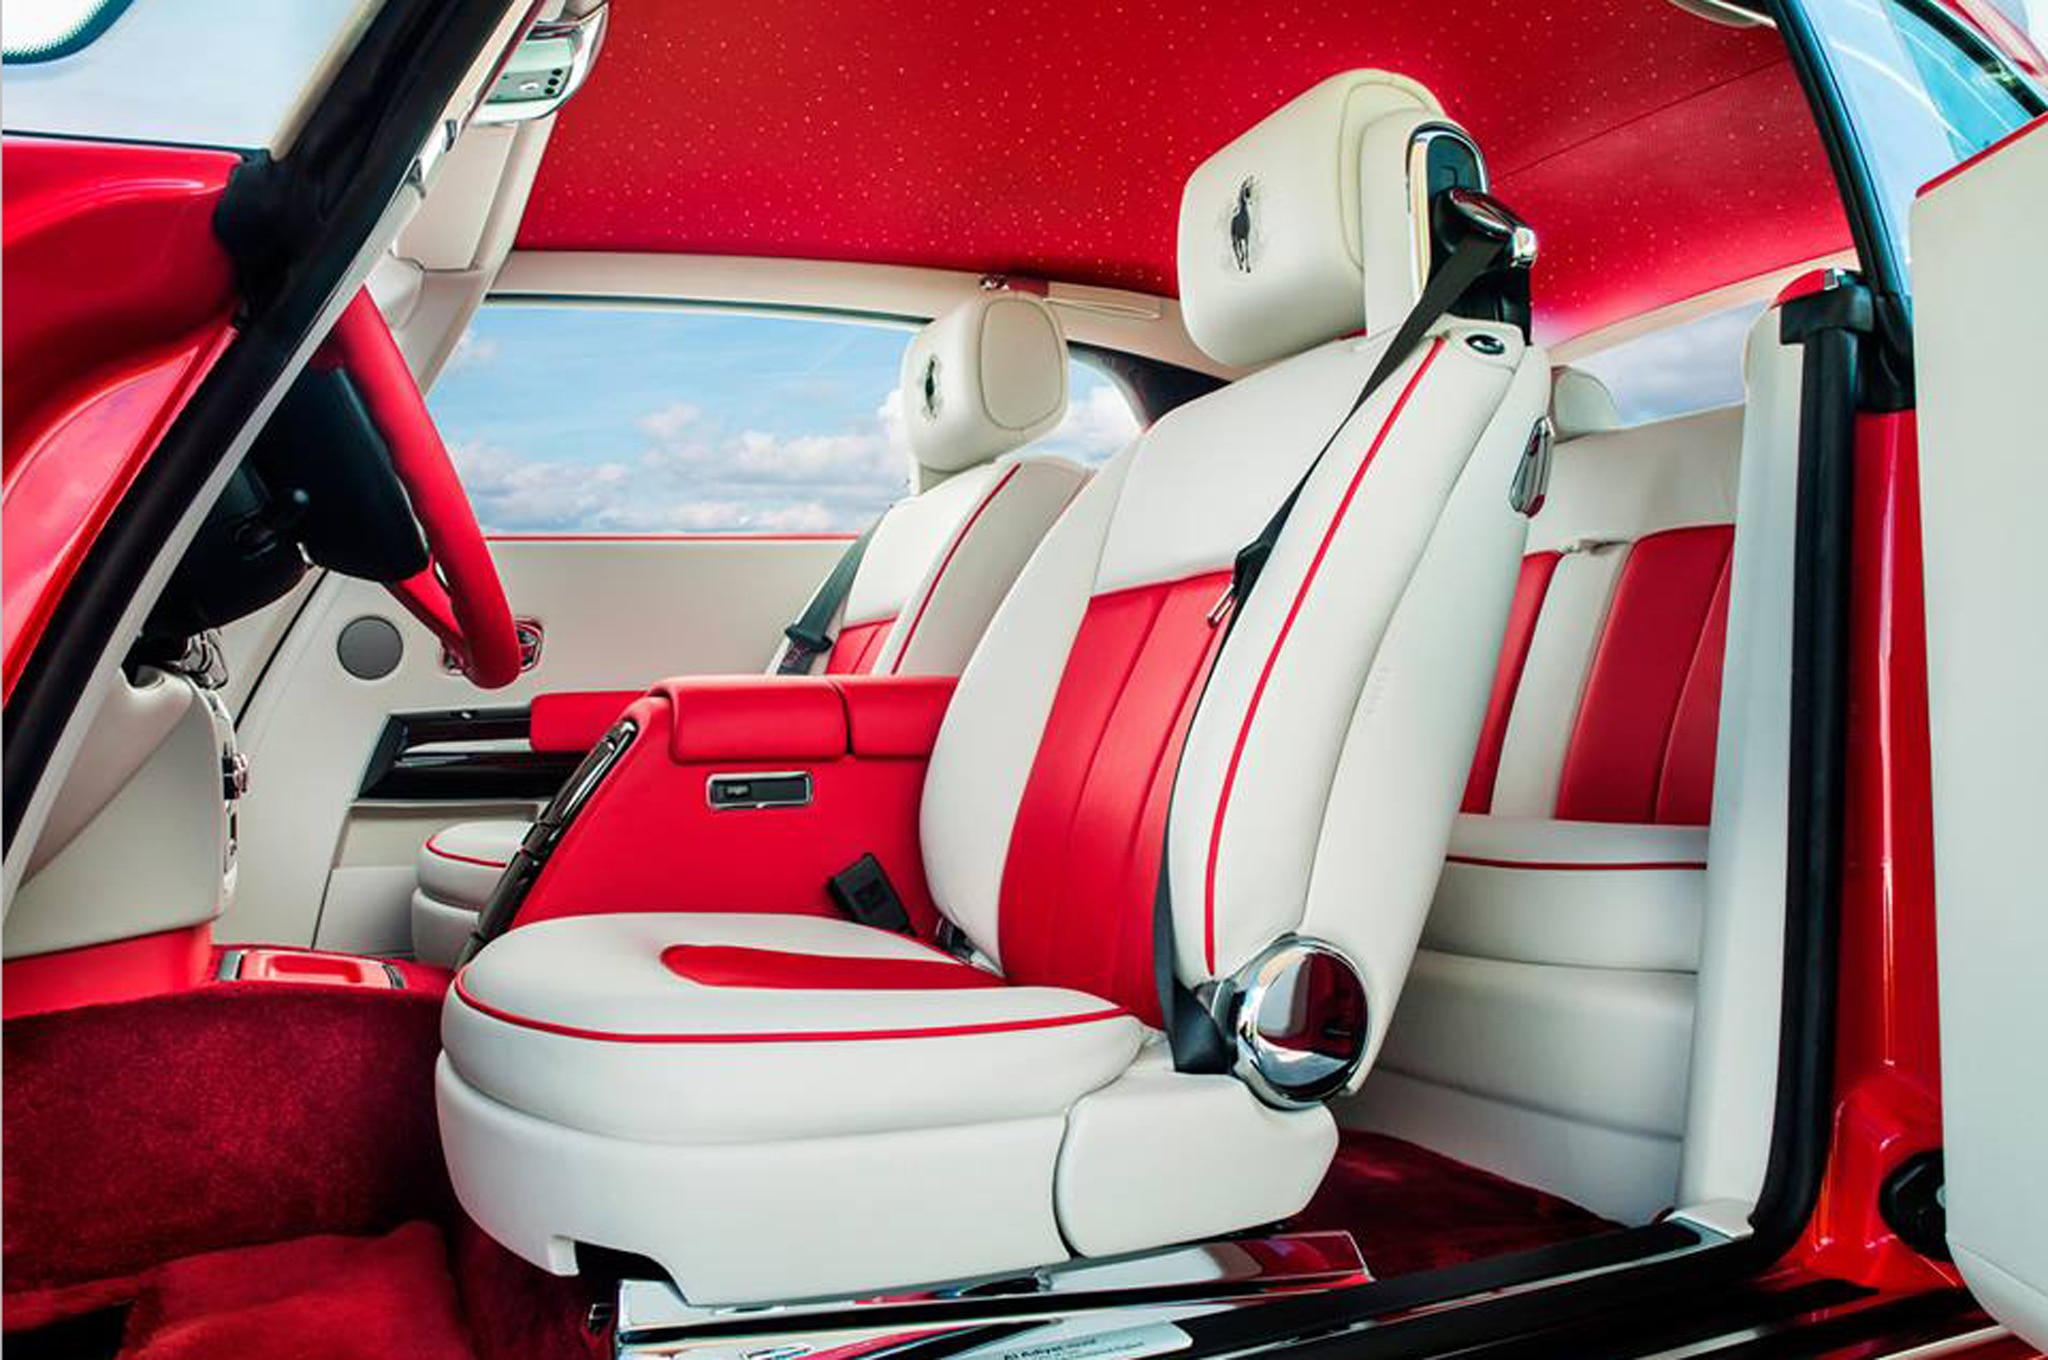 New Rolls Royce Al Adiyat Collection Puts You On A High Horse